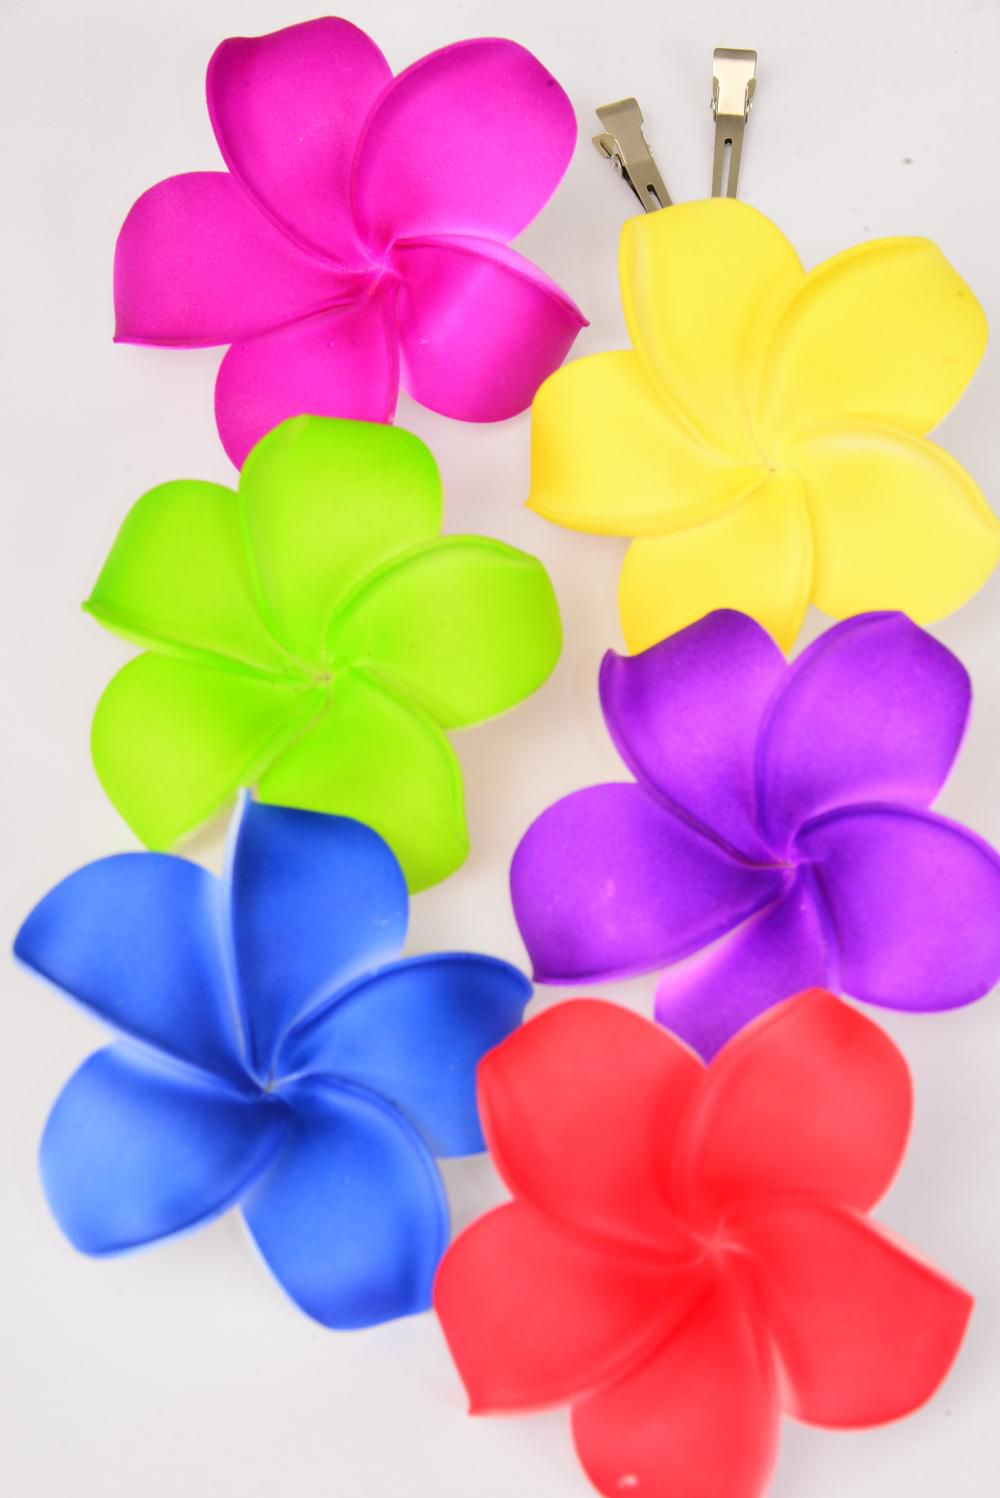 "Flower Large Aloha Multi Alligator Clip/DZ **Alligator Clip** Flower-3.5"" Wide,2 of each Color Asst,Display Card & UPC Code,W Clear Box"